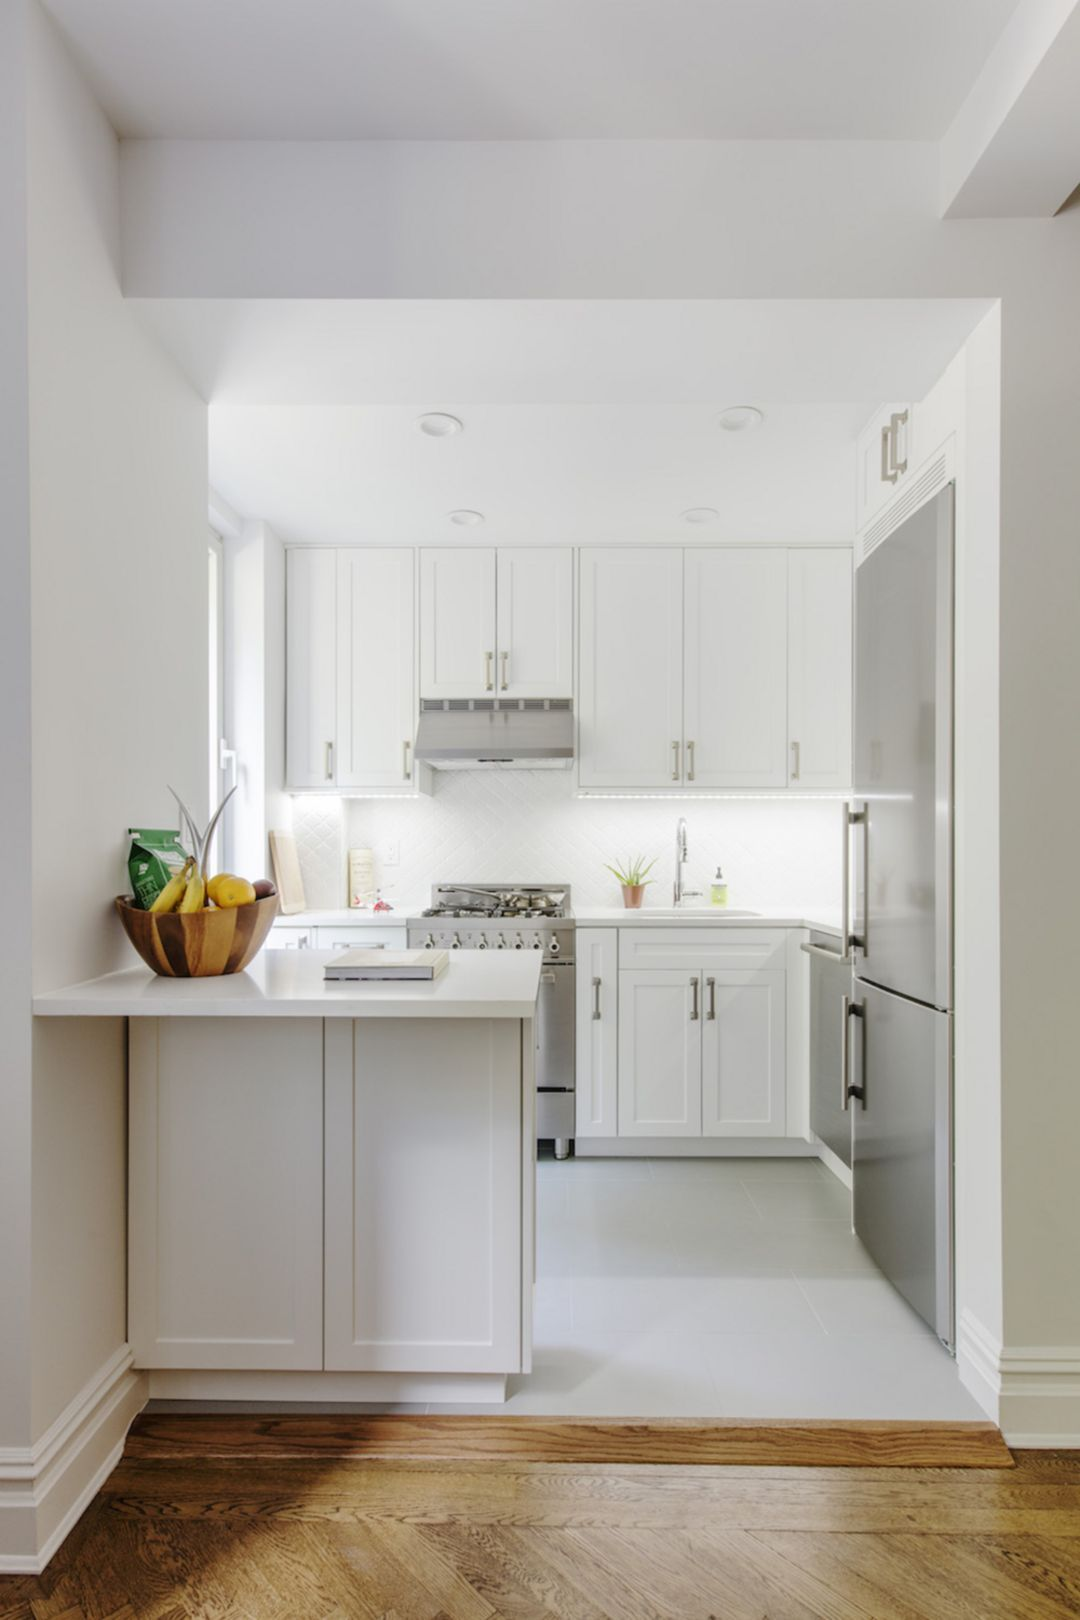 Home Interior Designs For Kitchens: 25 Modern And Charming Small Kitchen Ideas To Make It Look